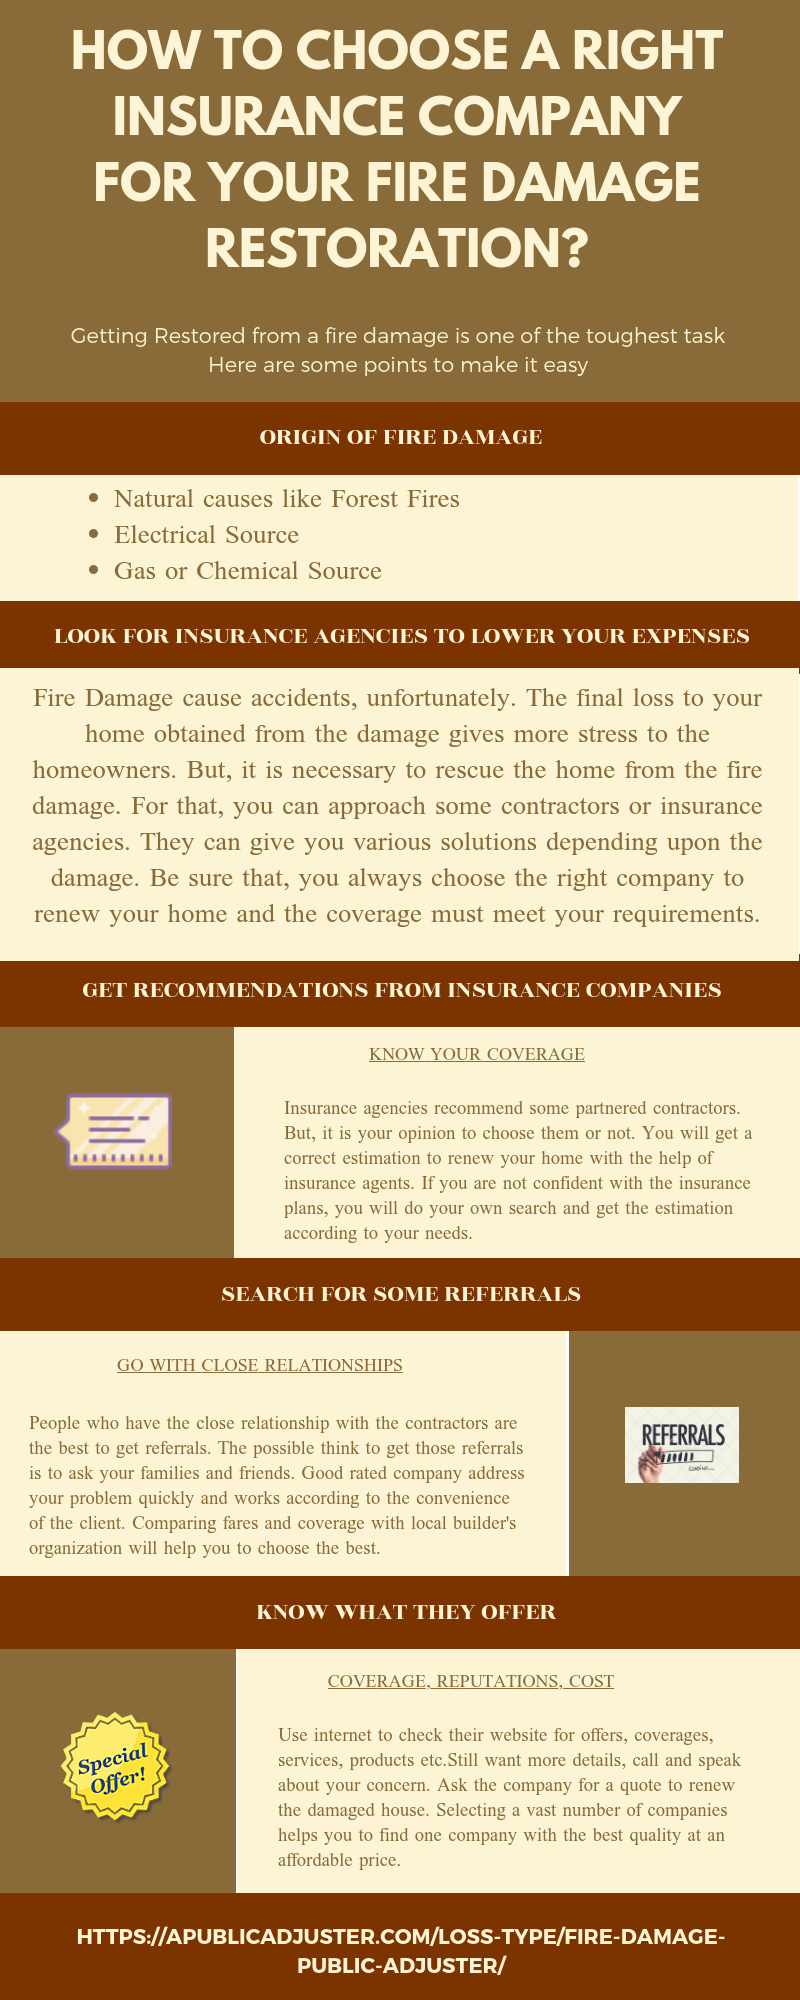 How To Choose A Right Insurance Company For Your Fire Damage